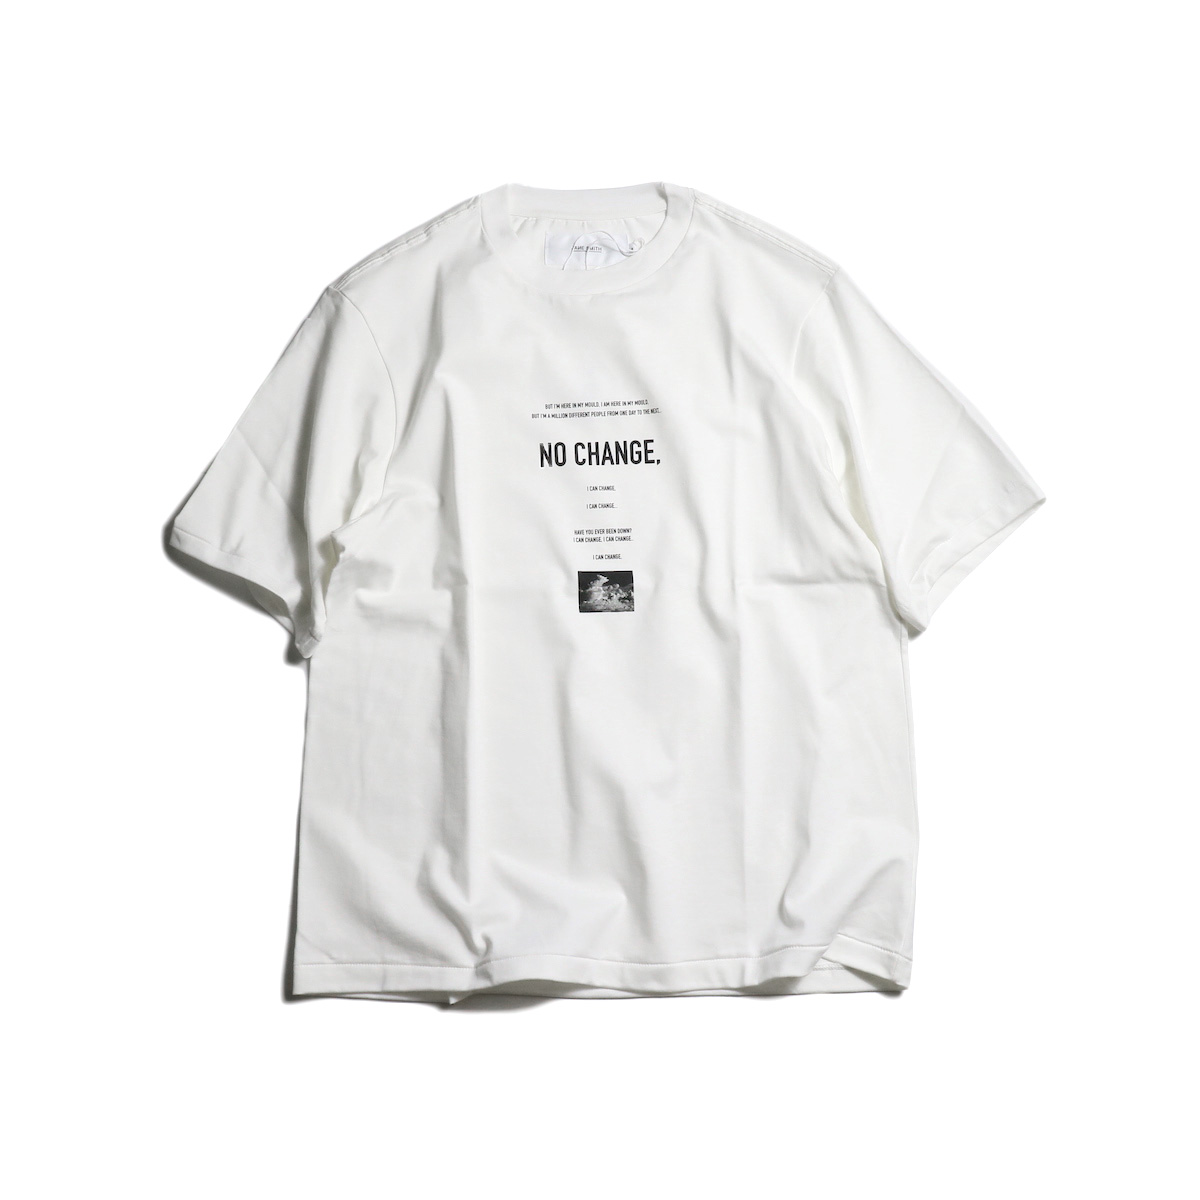 JANE SMITH / NO CHANGE L/S Tee 正面